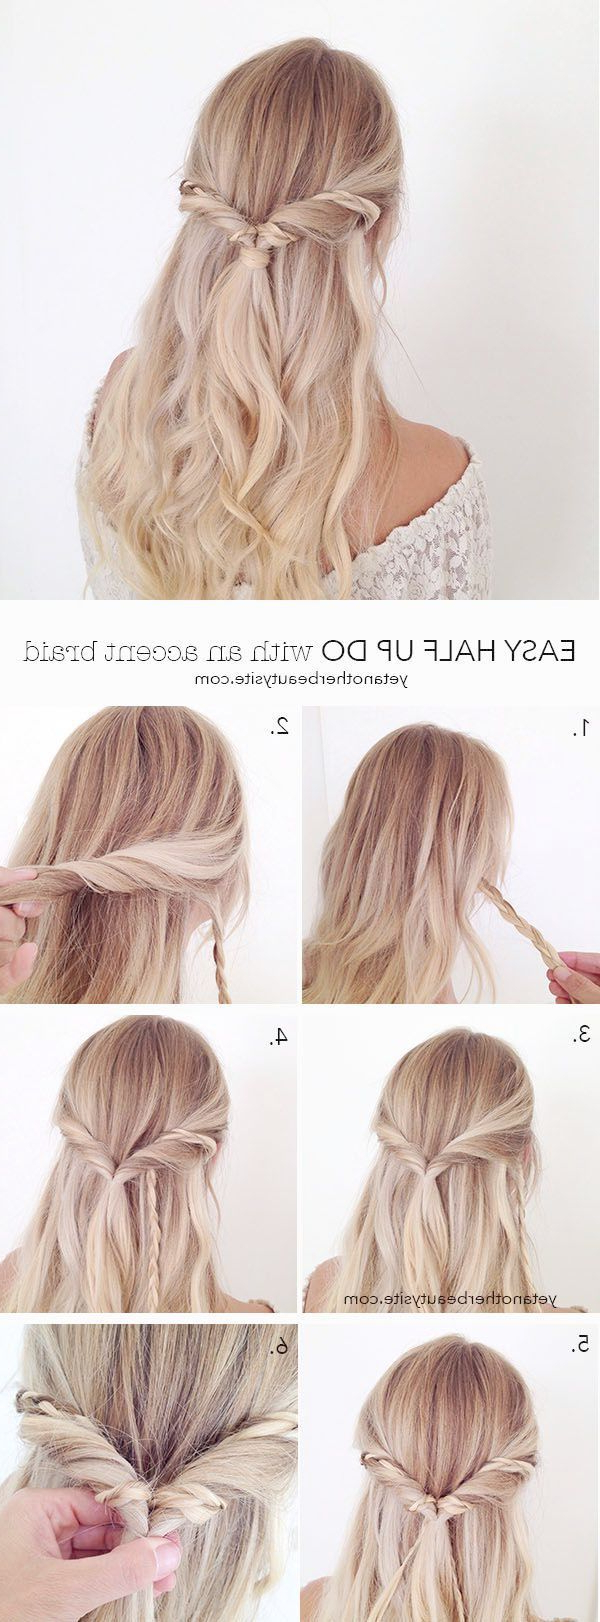 Most Recent Sleek And Simple Wedding Hairstyles For Simple Wedding Hairstyles Stepstep Wedding Hairstyles In (View 14 of 20)